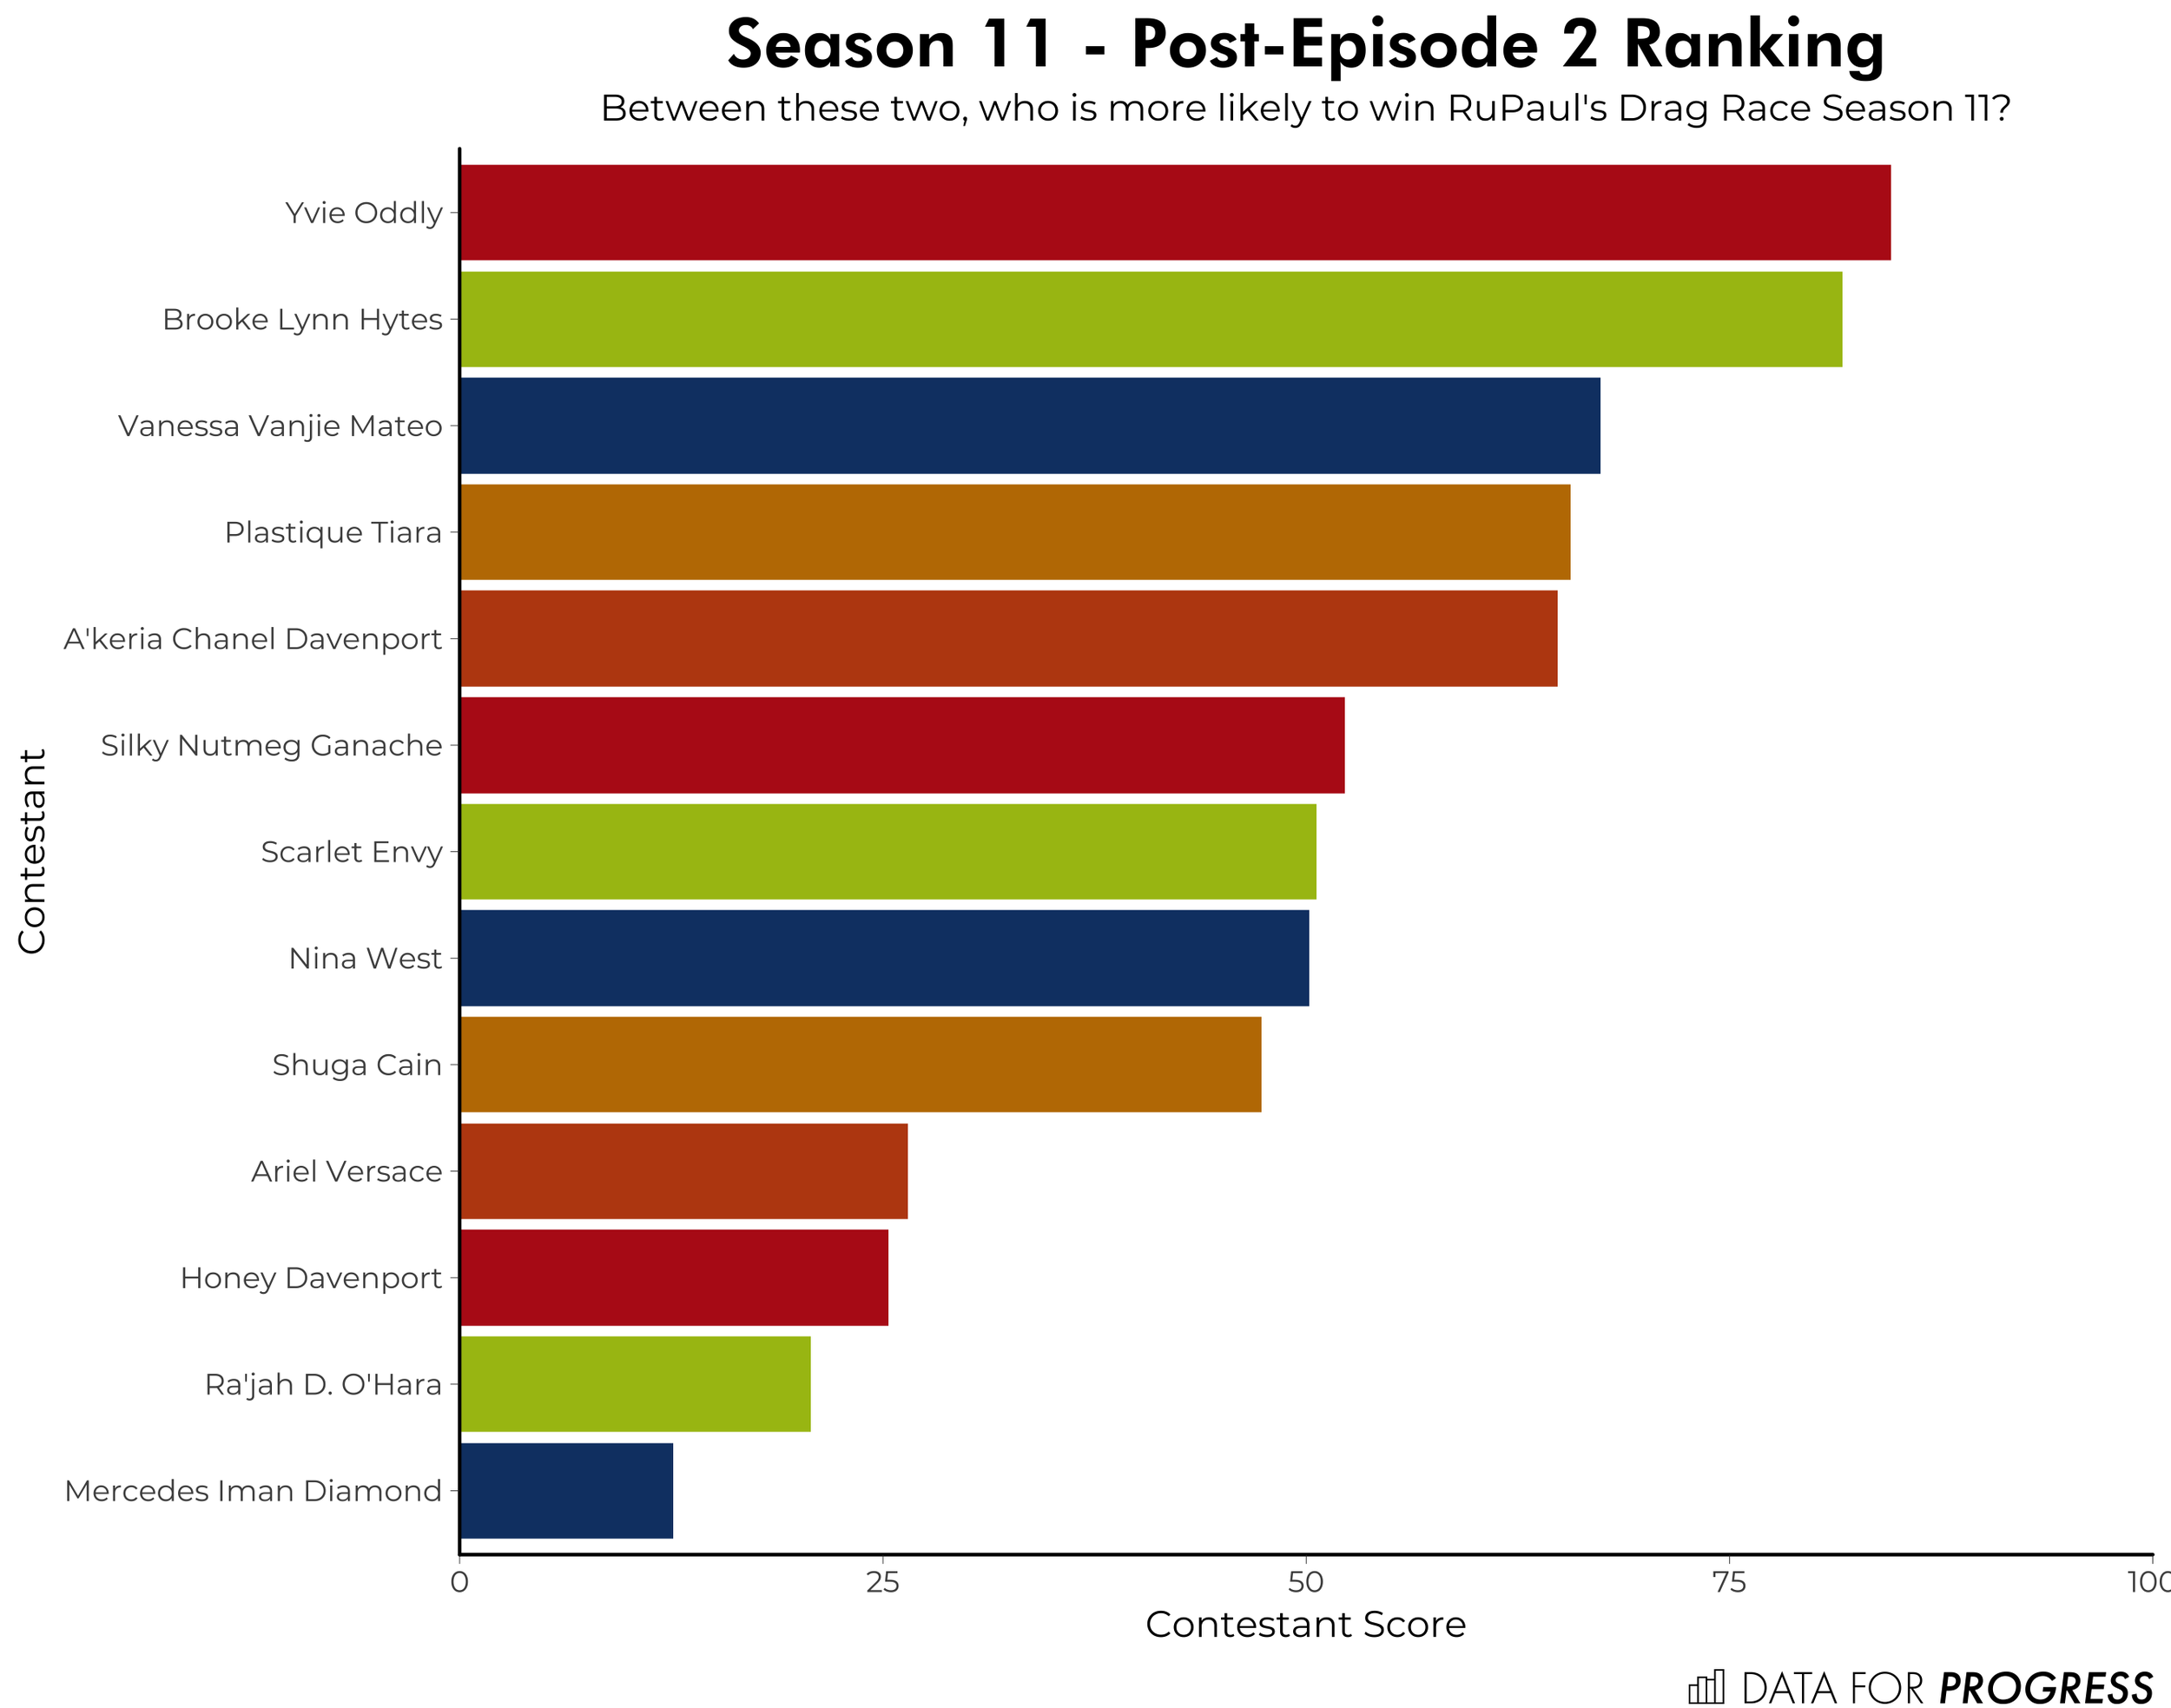 _s11e02ranking.png